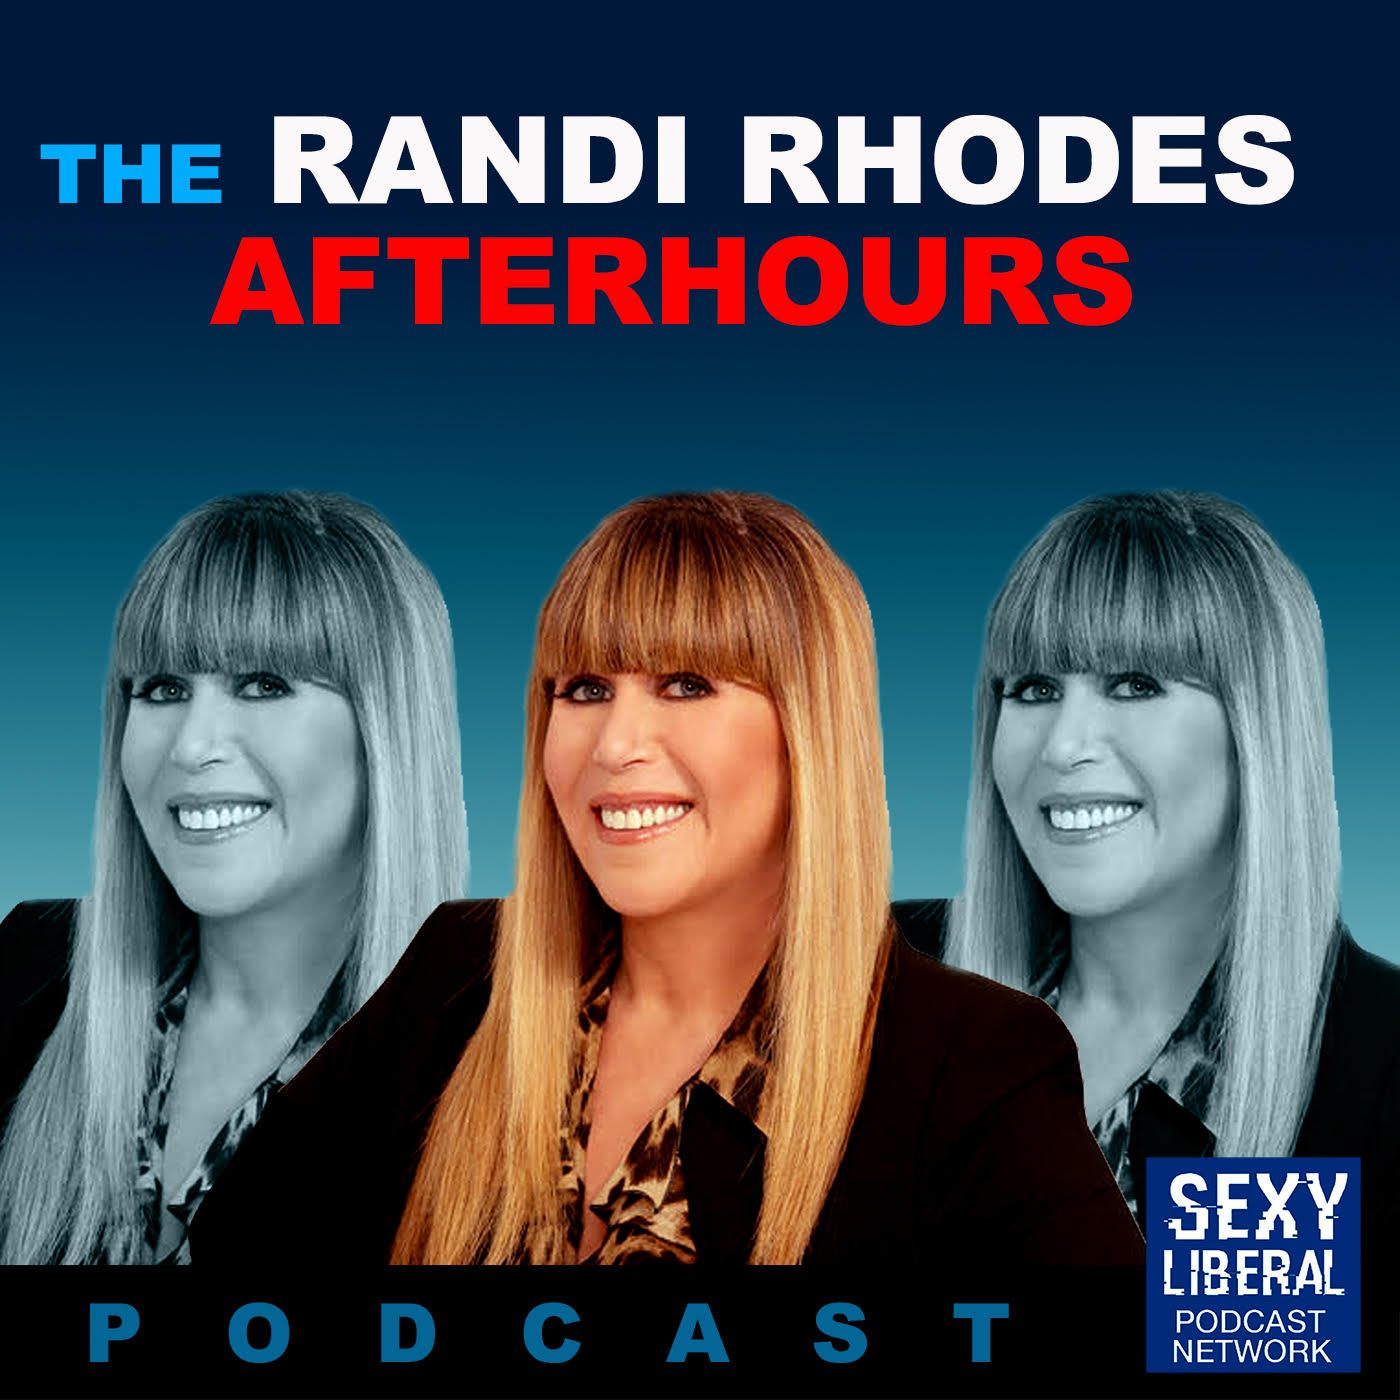 The Randi Rhodes Podcast – TIM WISE – THE INTERVIEW